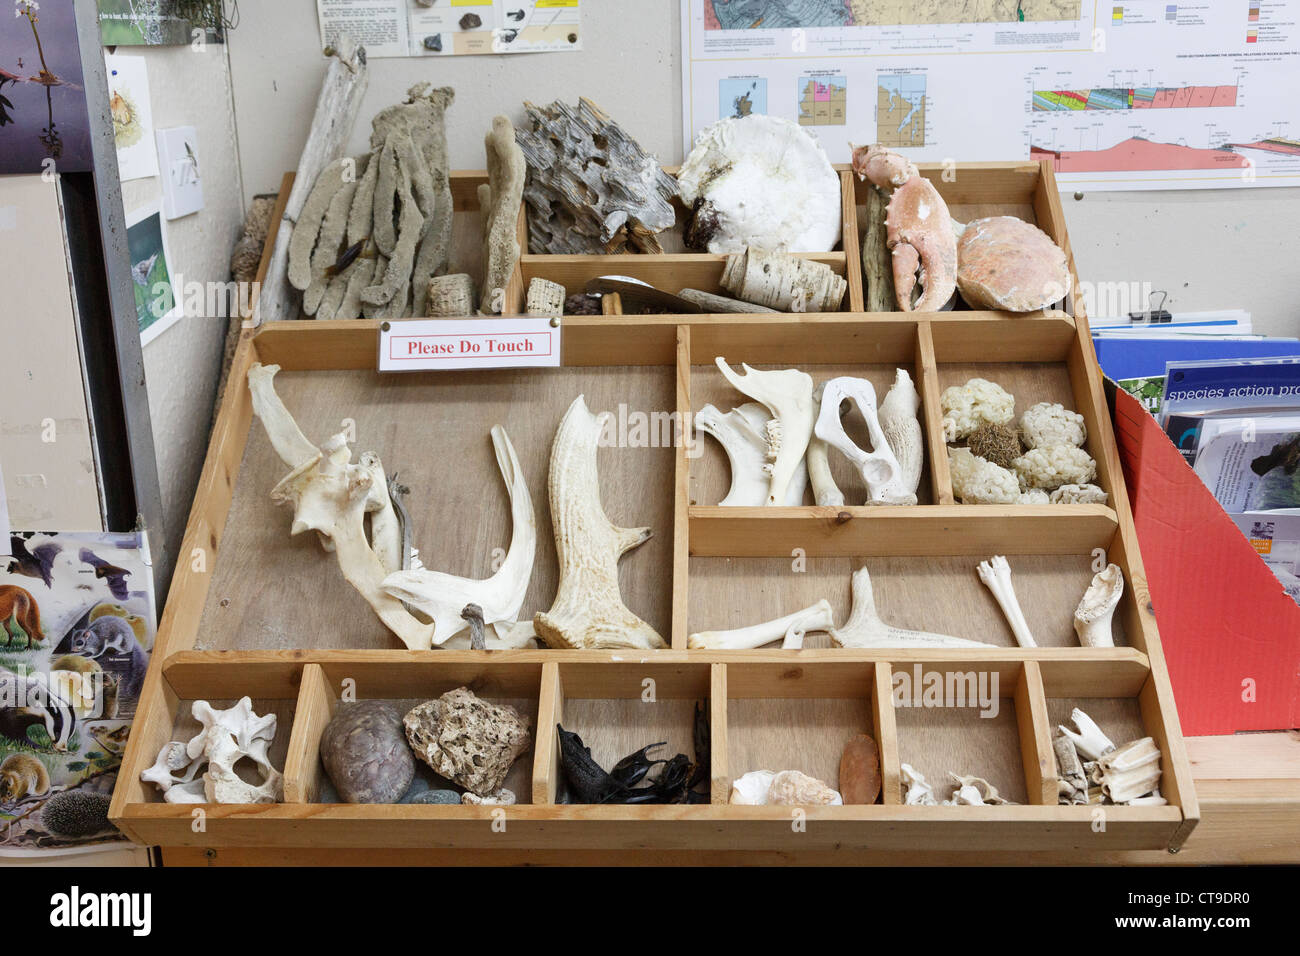 Display of tactile animal specimens to touch in the Visitor Centre in Durness, Sutherland, Highland, Scotland, UK, - Stock Image